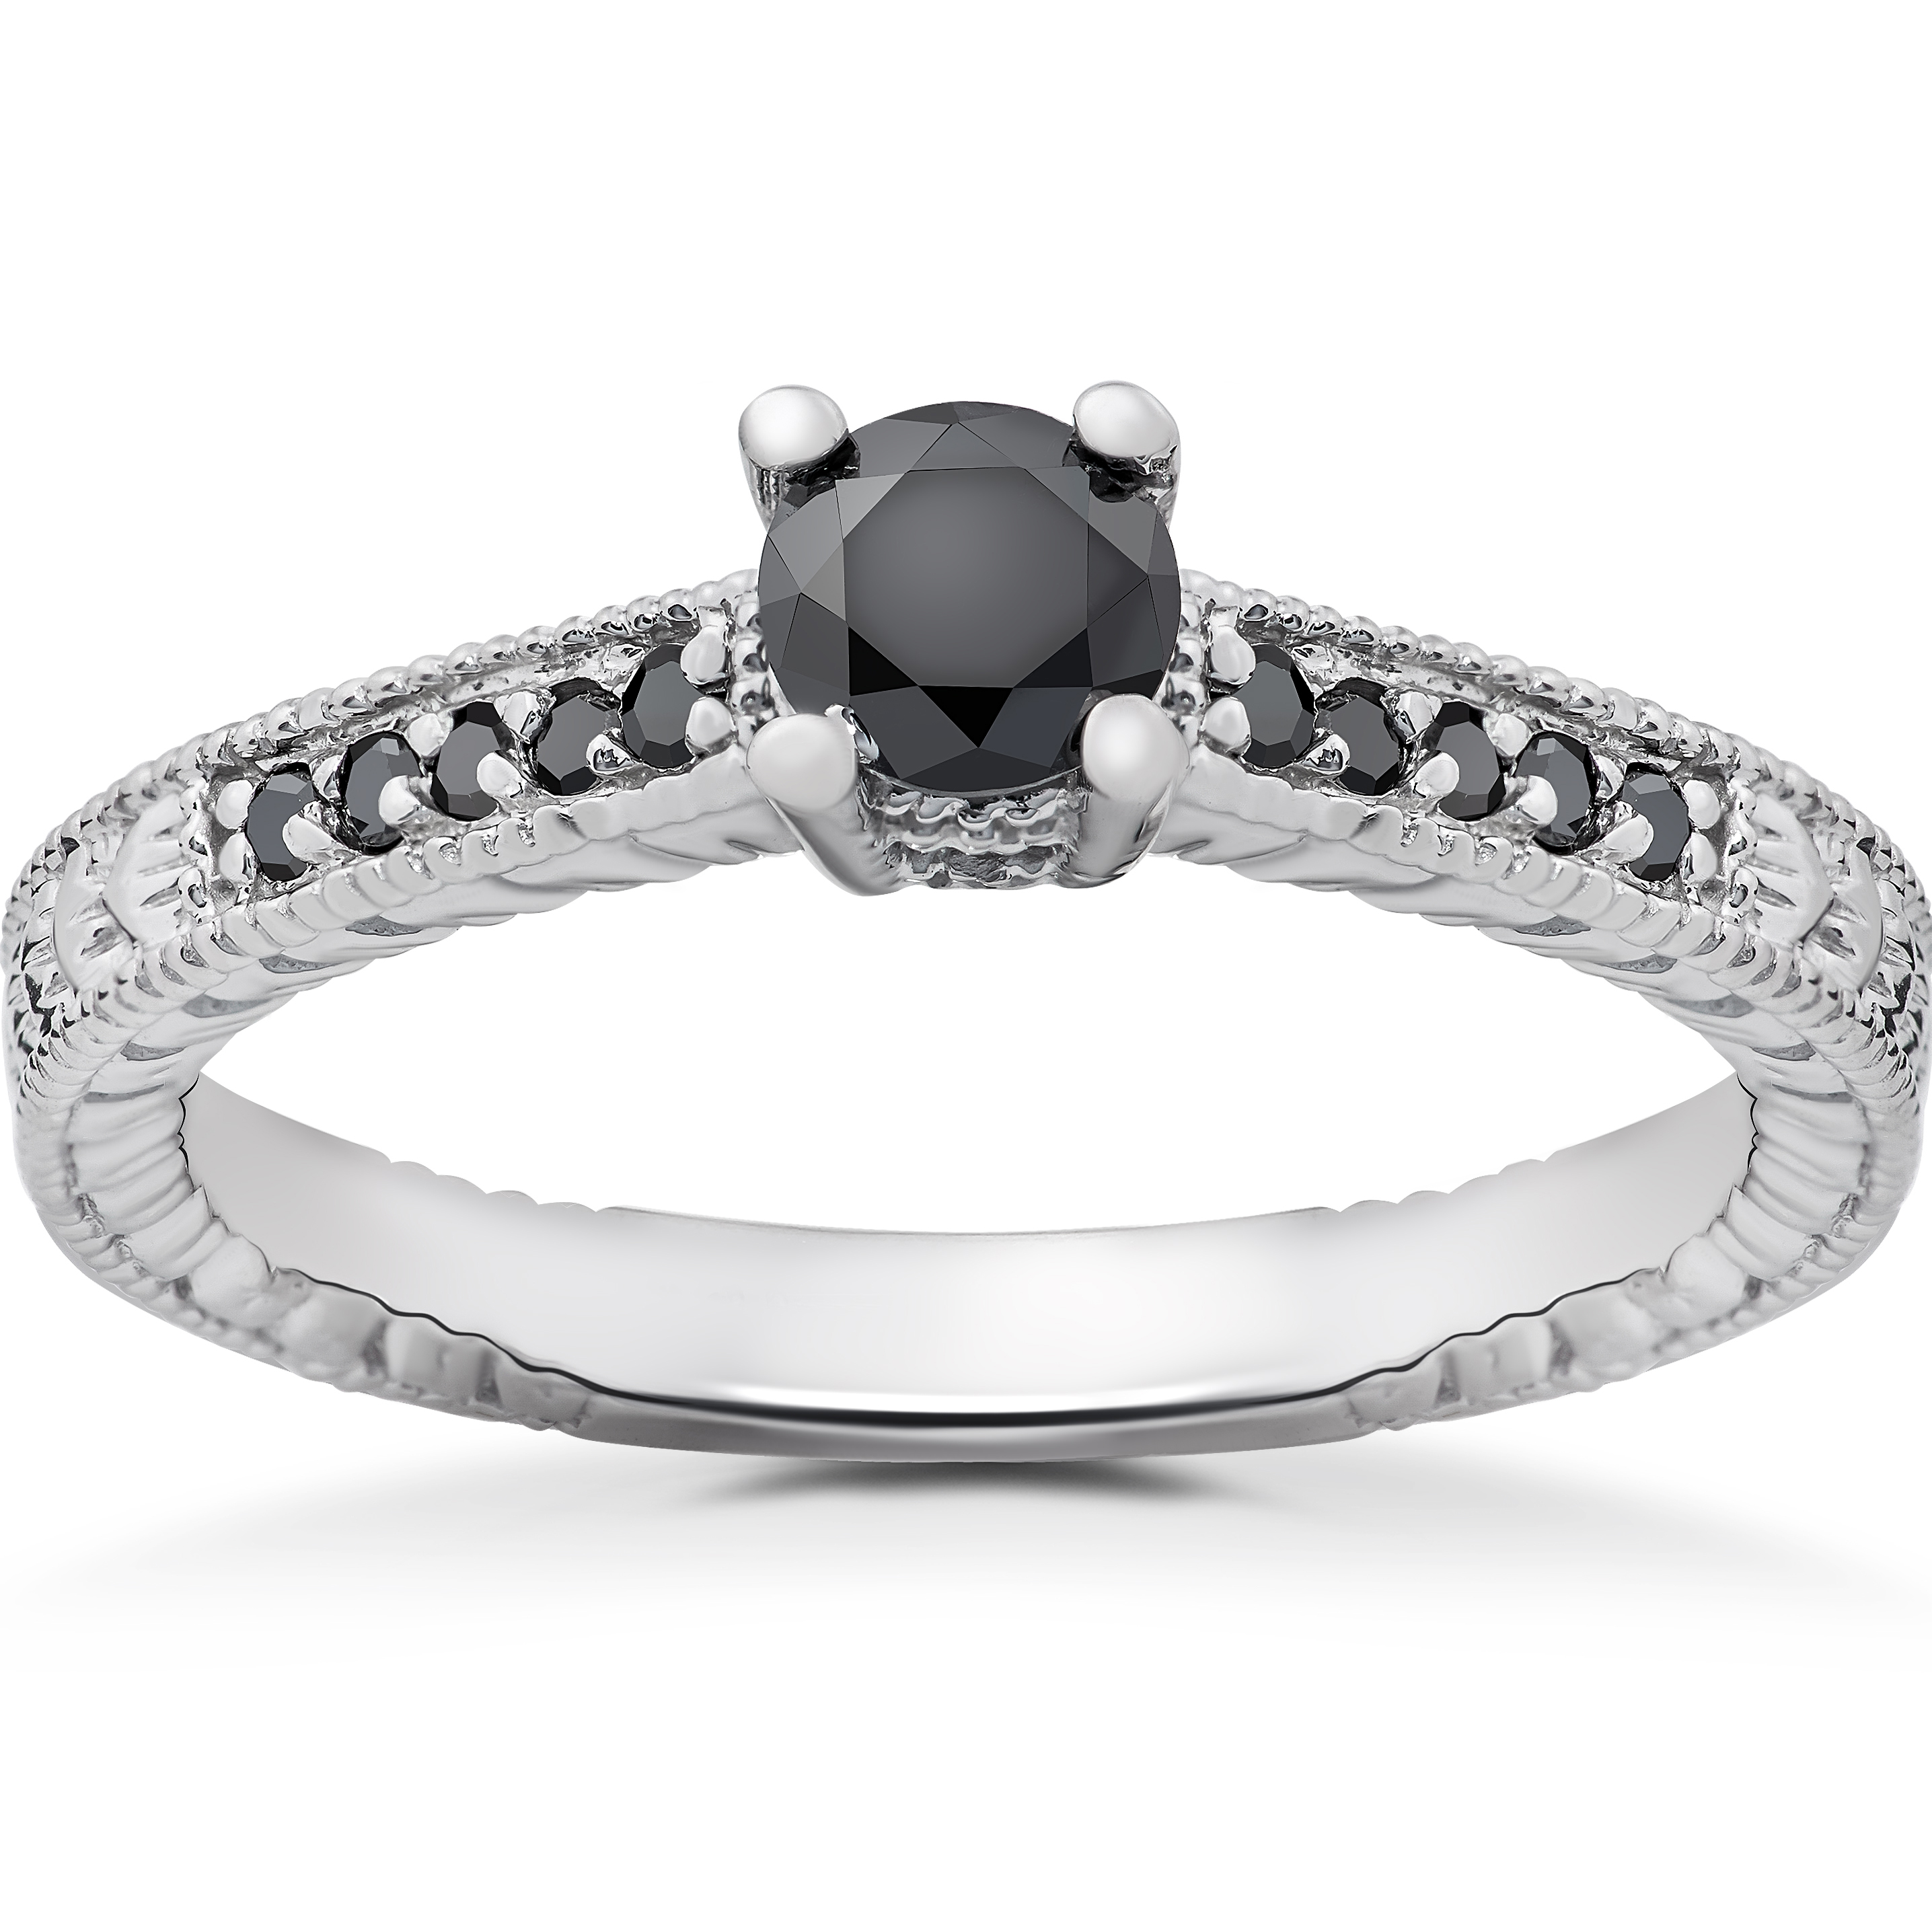 1 2 ct black diamond vintage engagement ring 14k white. Black Bedroom Furniture Sets. Home Design Ideas